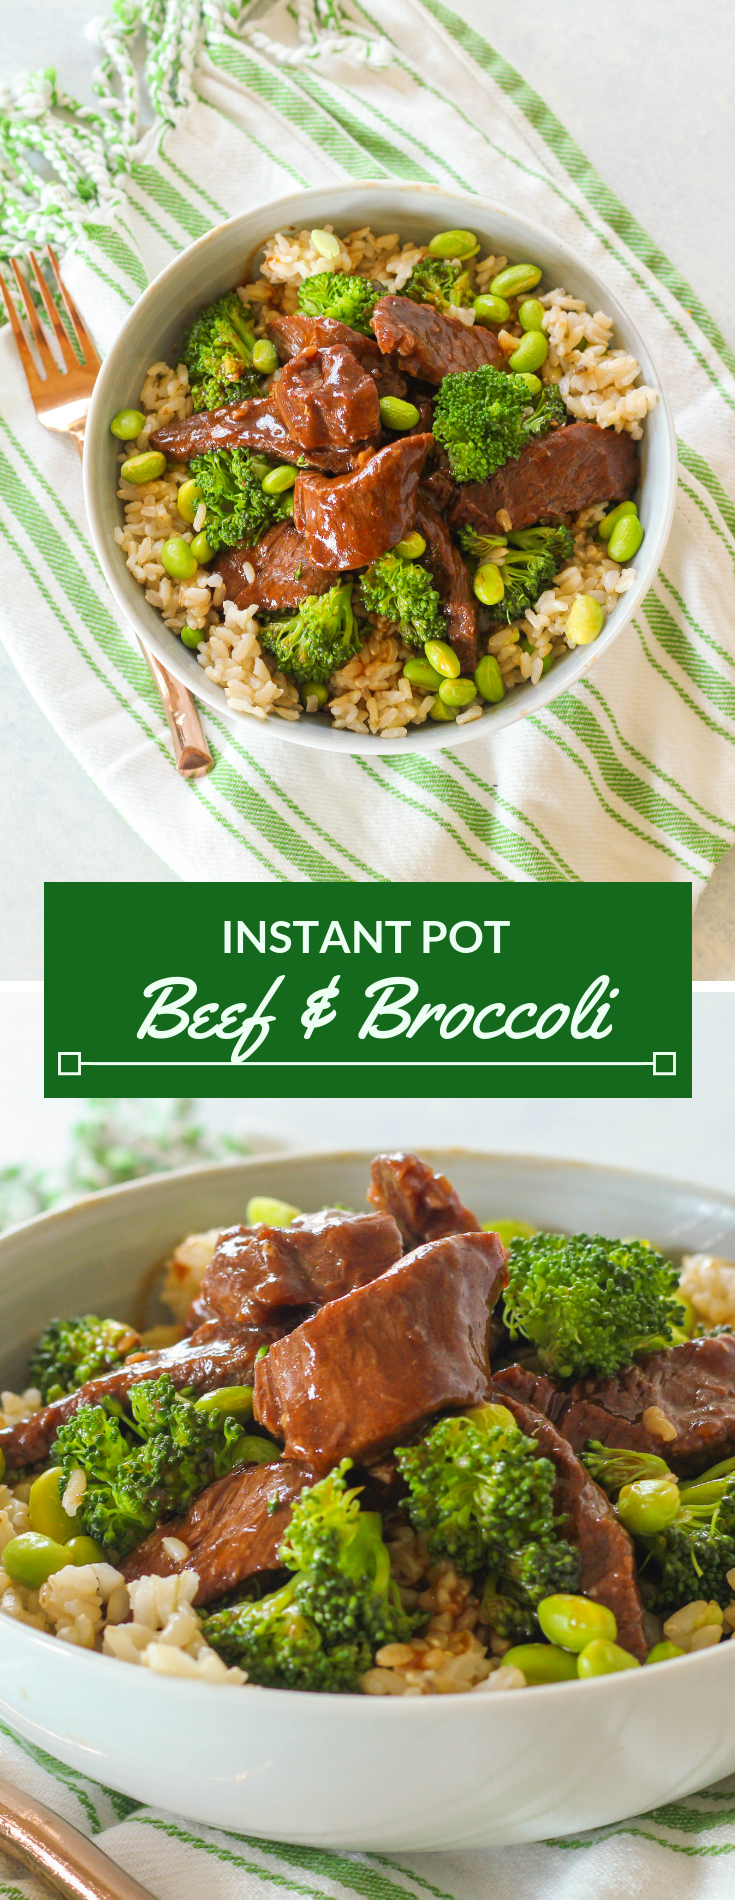 Tender slices of beef chuck roast cooked in a sweet and savory garlic ginger sauce-- this Instant Pot Beef and Broccoli is perfect for a quick weeknight meal!